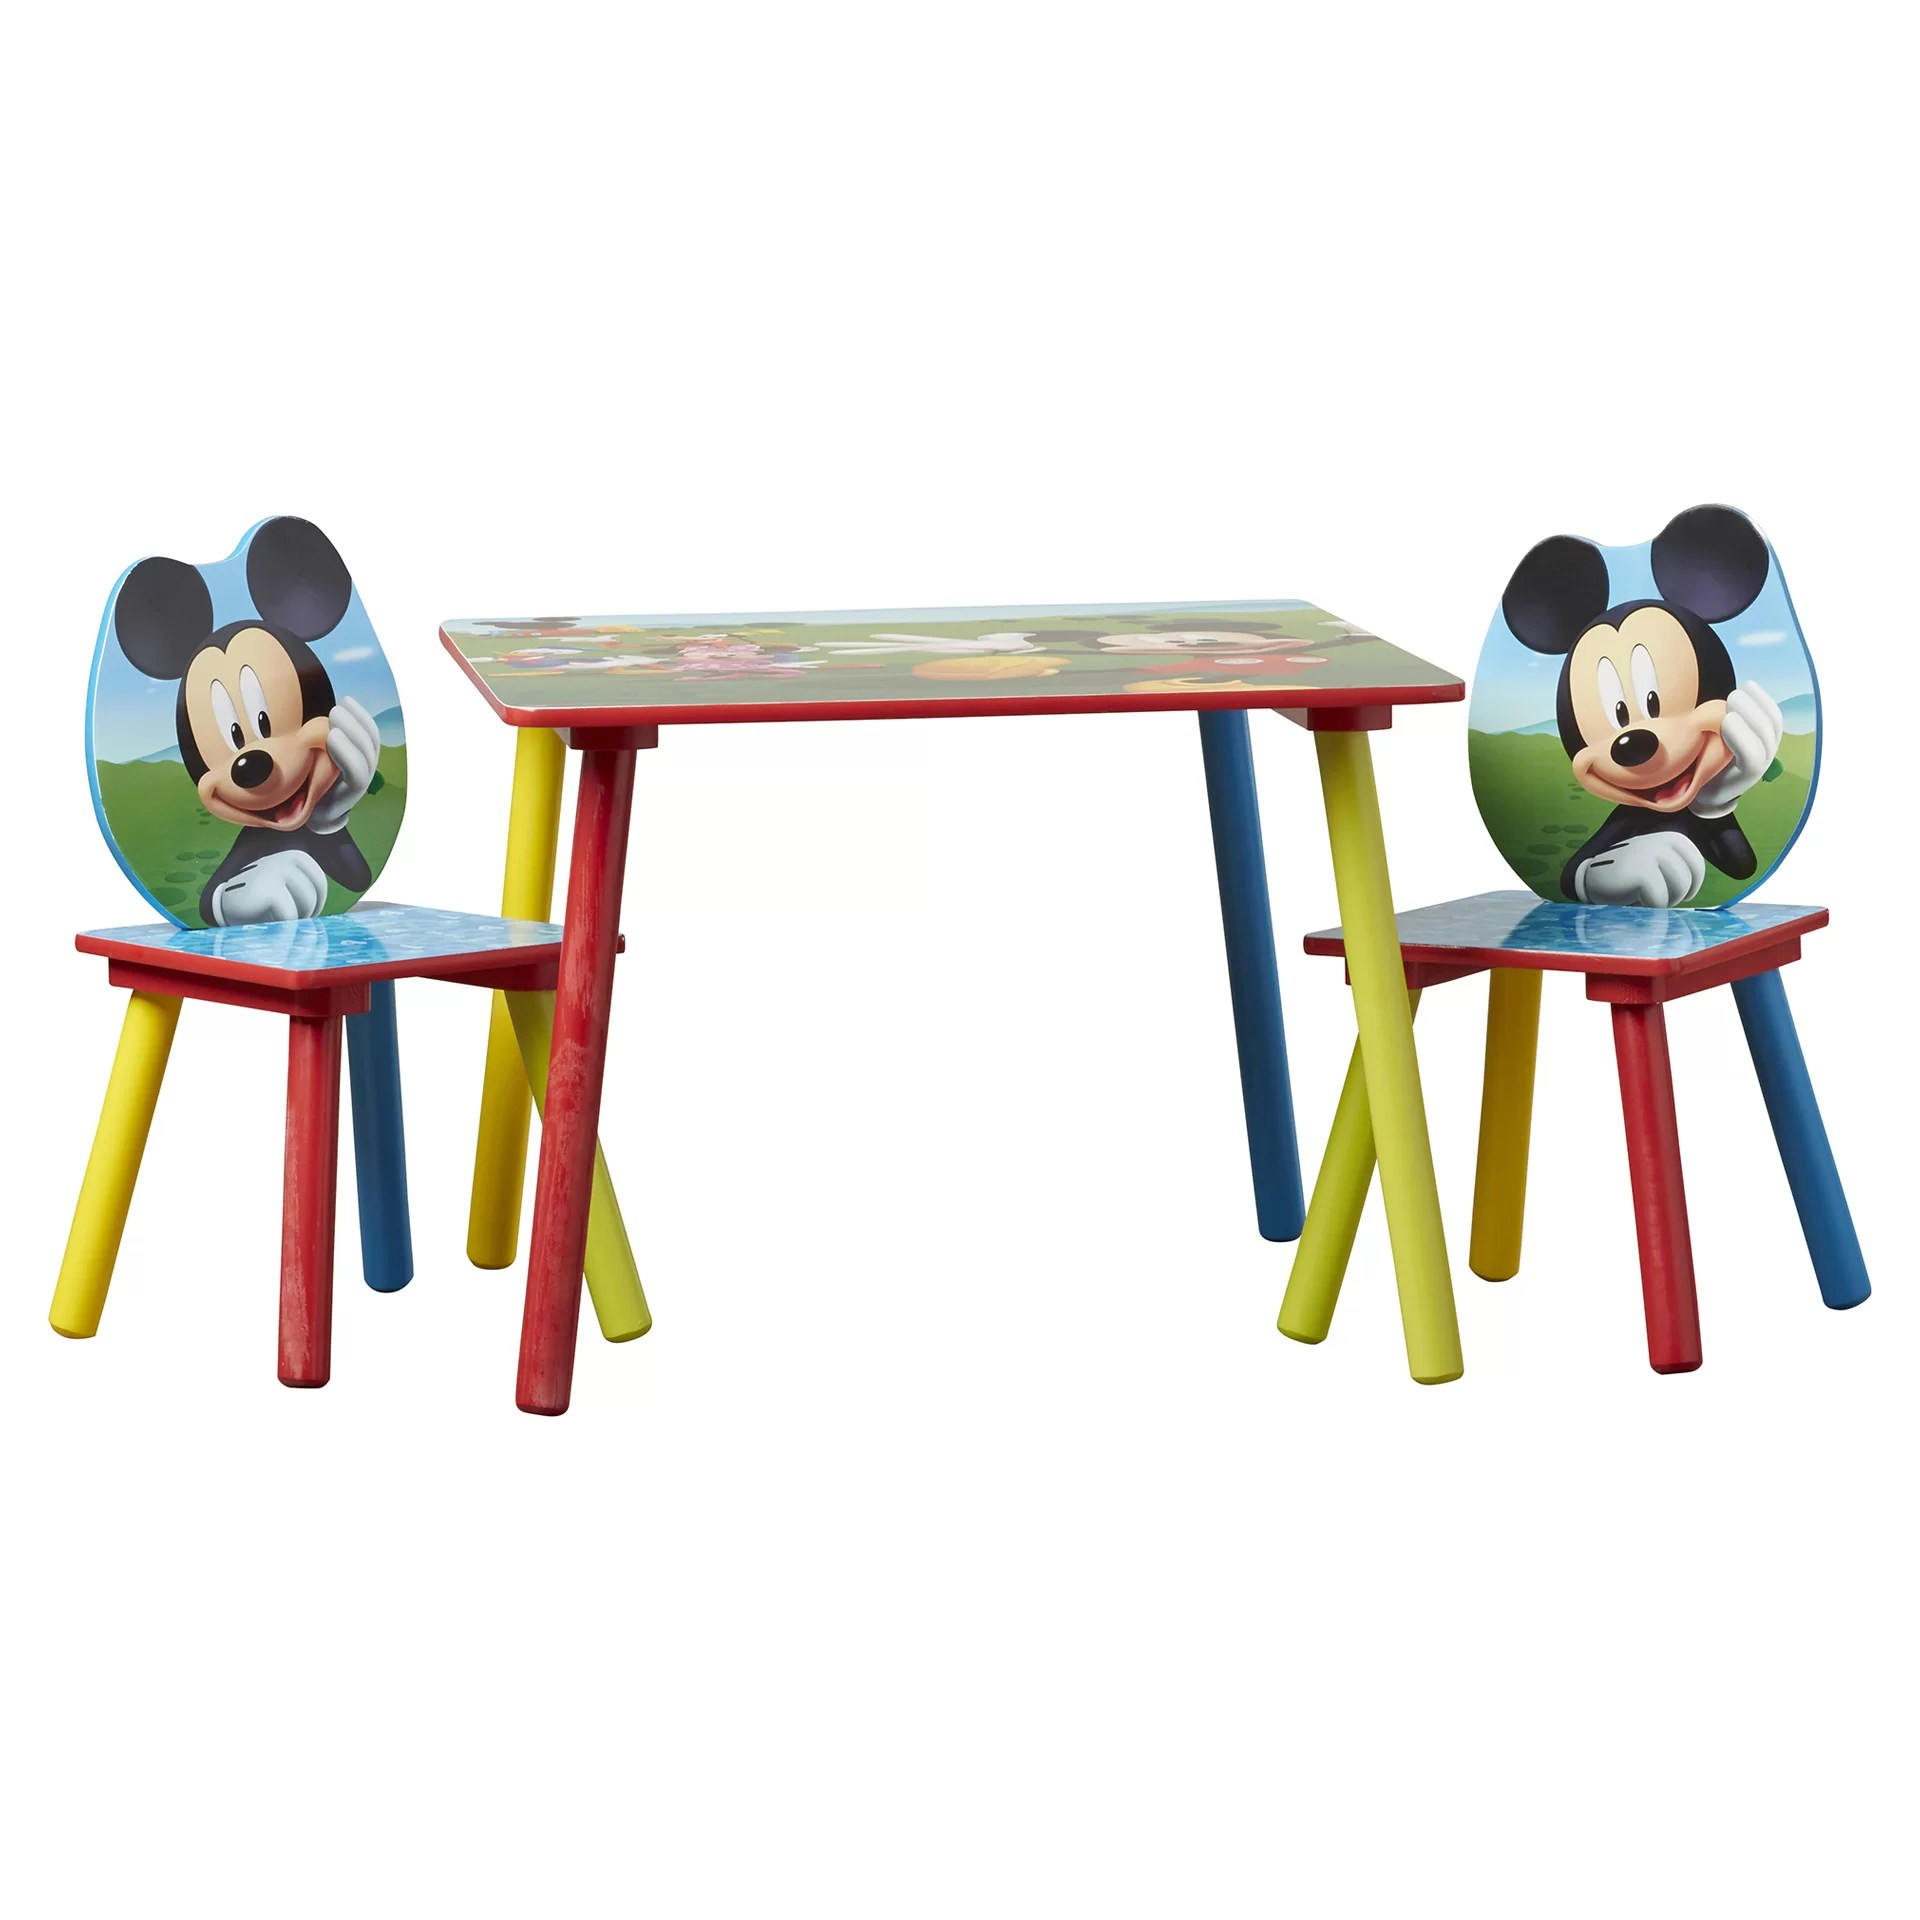 Mickey Mouse Chairs For Toddlers Mickey Mouse Kids 3 Piece Writing Table And Chair Set